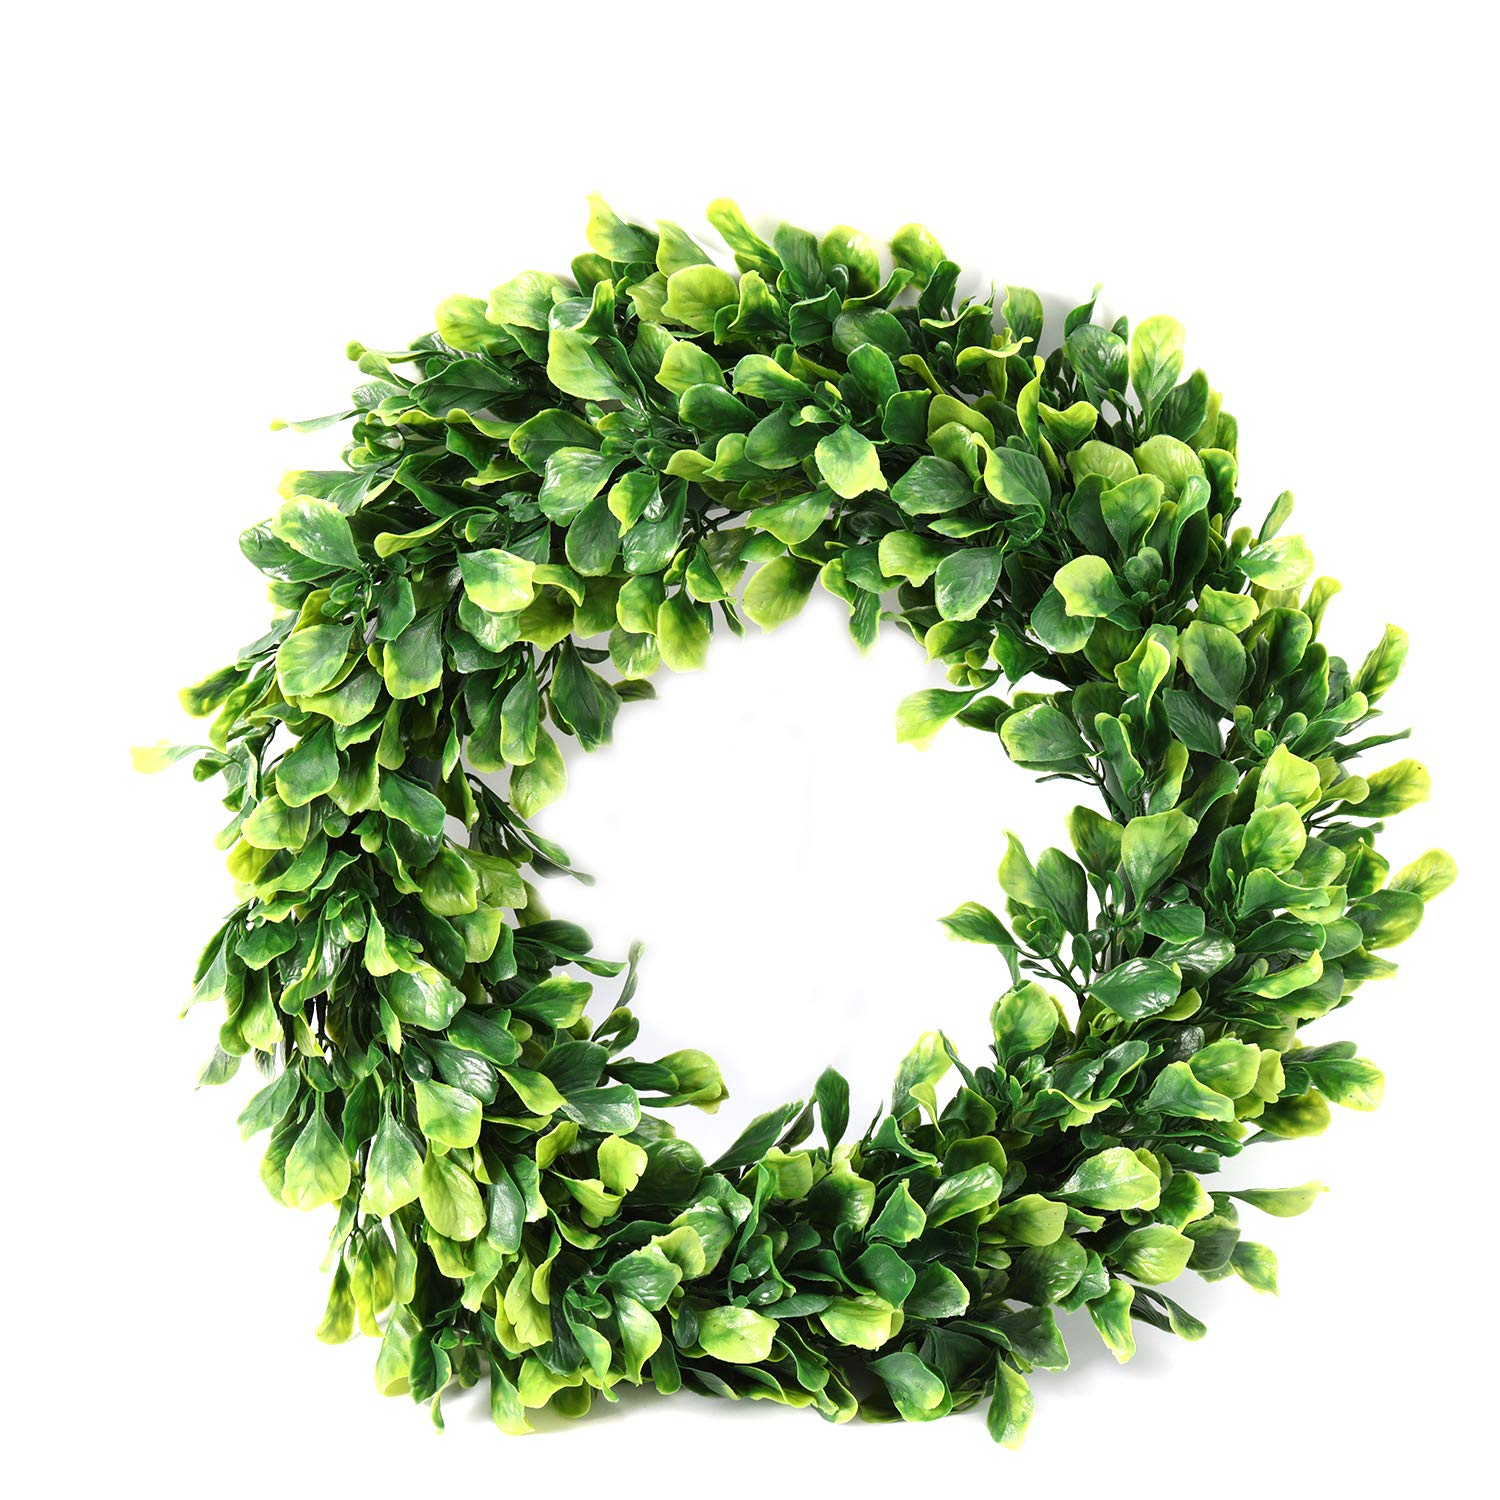 Azoco 17'' Artificial Boxwood Wreath, Faux Green Leaves Wreath Round Farmhouse Greenery Garland for Home Front Door Hanging Wall Window Wedding Party Summer Decor, Indoor/Outdoor Use by Azoco